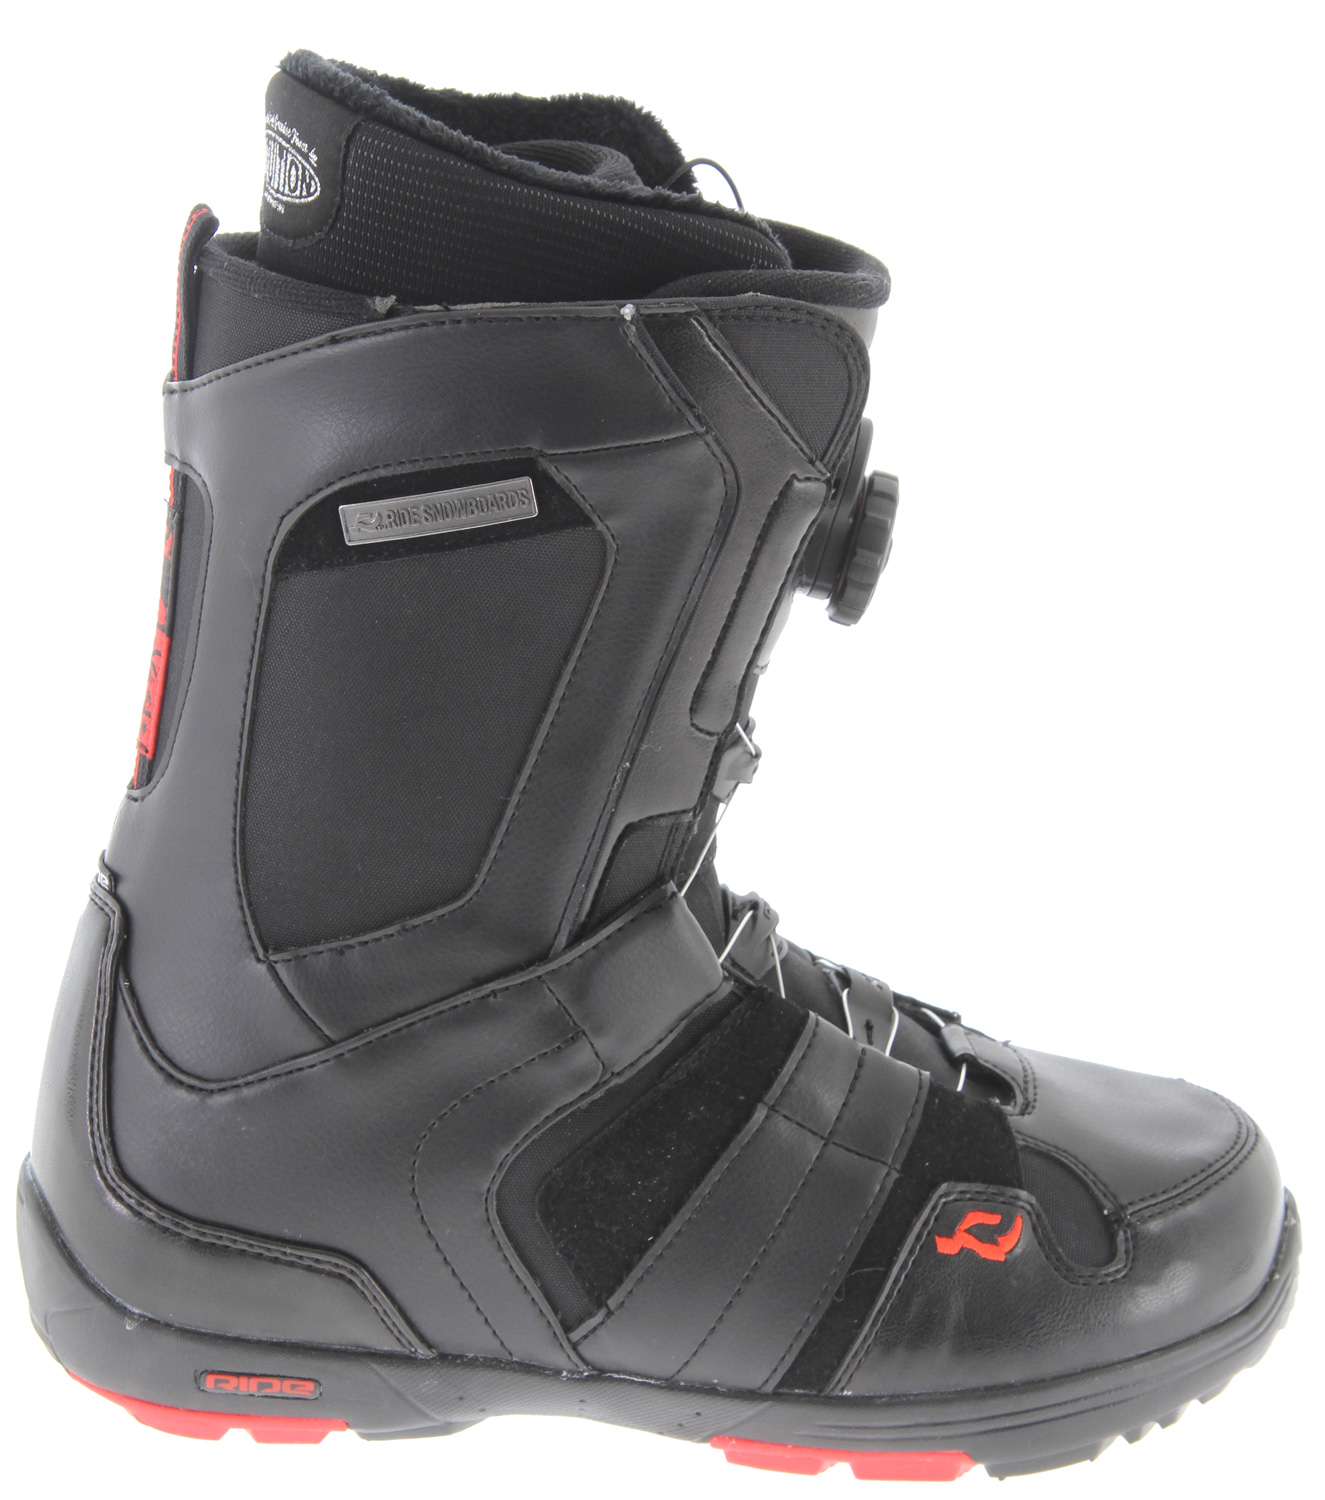 Snowboard The All Around Luxury Boot. The Jackson is built for the intermediate Rider looking to push himself above and beyond on any given terrain. Featuring The Closer lace guide with Boa Coiler lacing for total boot closure, superior heel hold and solid Rider control. Add our Intuition Support Foam Liner and newly re-designed Blown Light Summit outsole and you'll have the fastest, most comfortable boot so you can focus on the day, not your feet. Key Features of the Ride Jackson BOA Coiler Snowboard Boots: Liner: Intuition Support Foam Liner Technology, w/ Aegis Antimicrobial Coating Liner Fit: Thermo-Formable Internal & External J Bars Under Foot Support: 3D Formed Dual Density EVA Insole NEW! Sole: Blown Light Summit Liner Lacing: Lock Down Turbo Shell Lacing: H2 Boa Coiler Lacing System w/ The Closer - $129.95